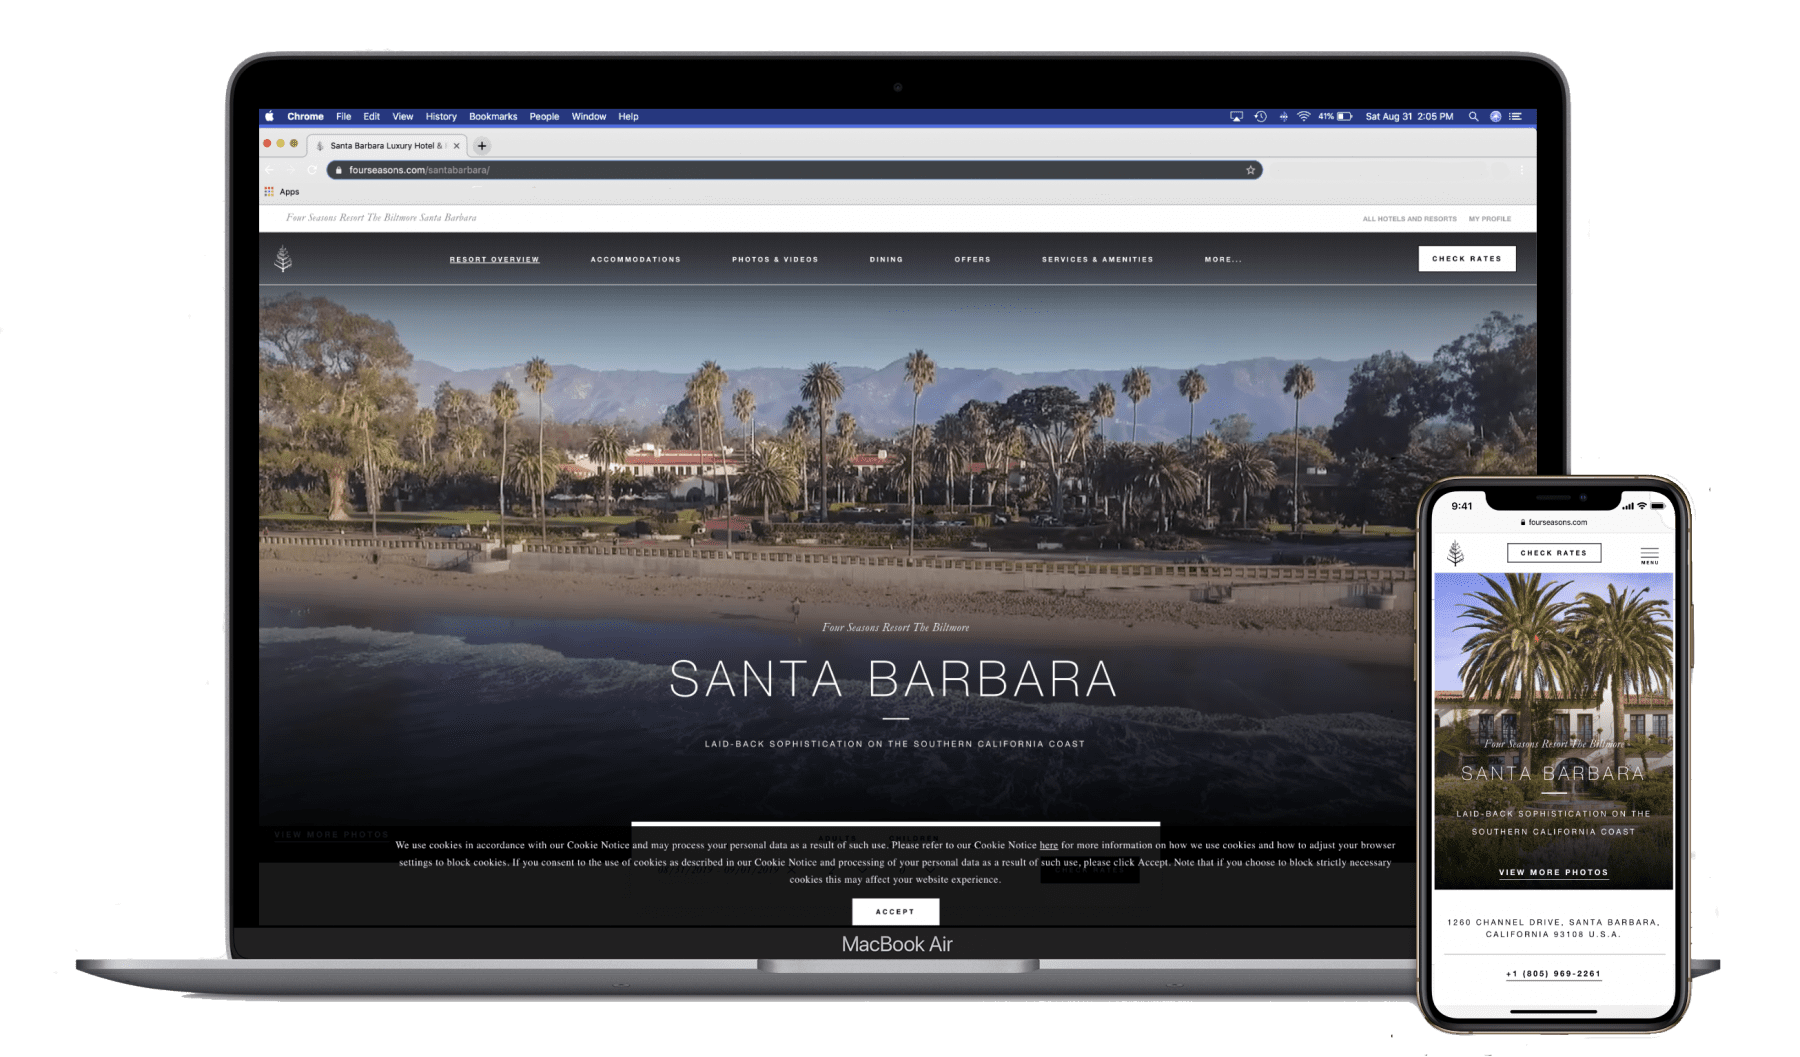 o visually represent Rose & Crown Co. offering web design to the businesses of Santa Barbara